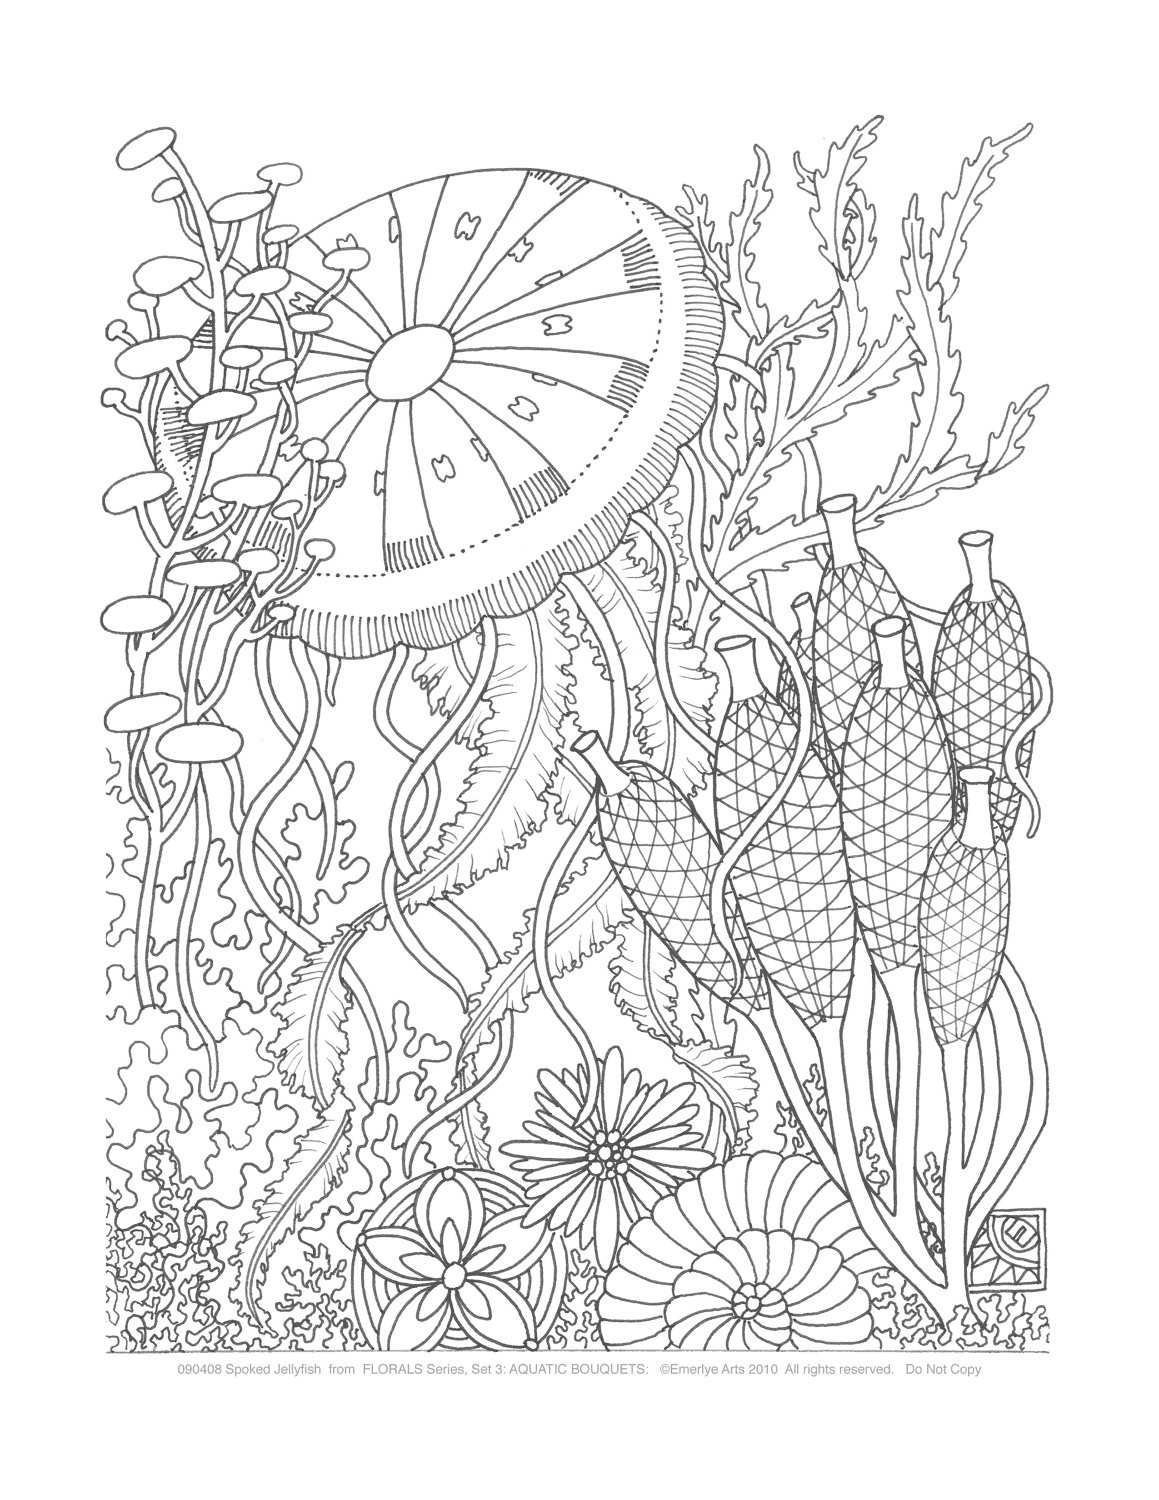 Simple Adult coloring page to print and color for free